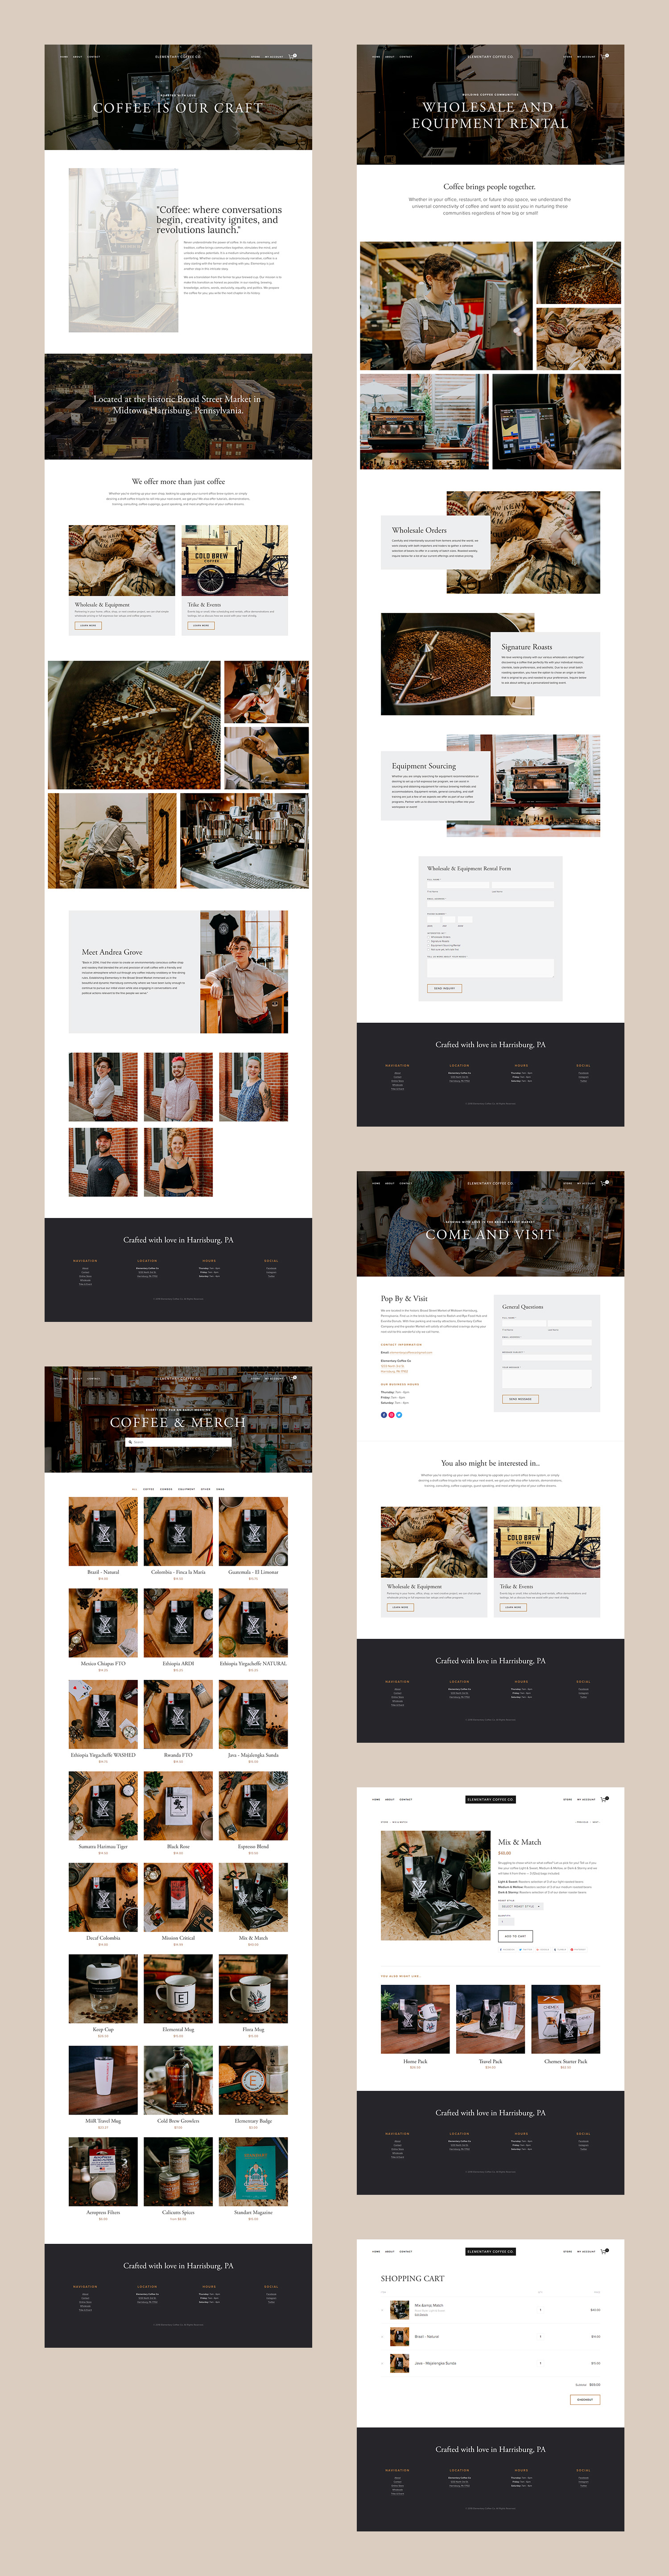 Squarespace-Coffee-Shop-Website-Screenshot-02.jpg